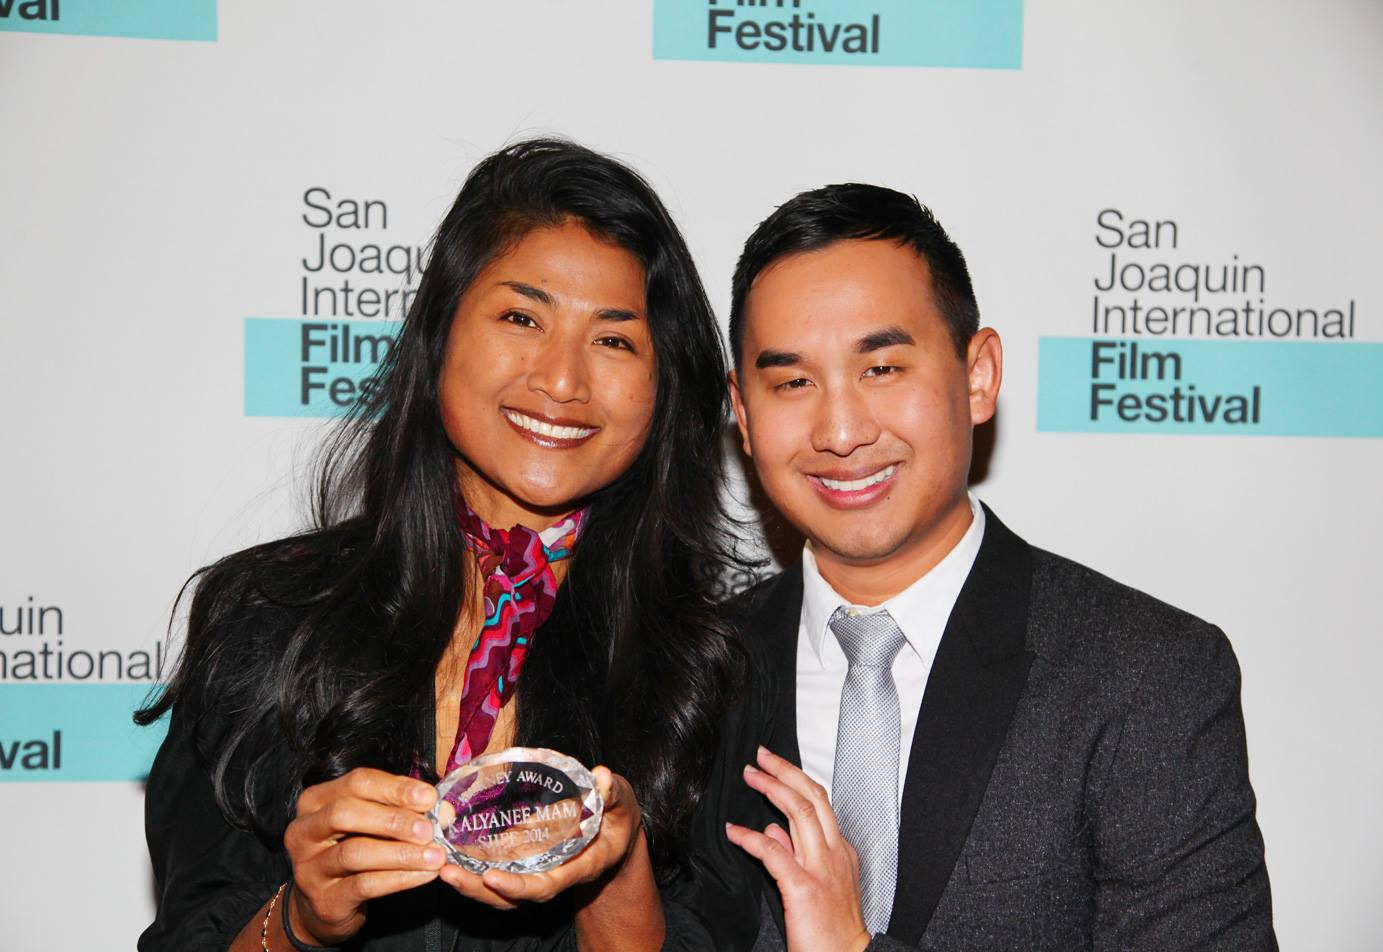 Cambodian-born filmmaker Kalyanee Mam, left, with Cambodian-born film festival programmer Sophoan Sorn, director of the San Joaquin International Film Festival in Stockton, in January 2014. Via SJIFF.